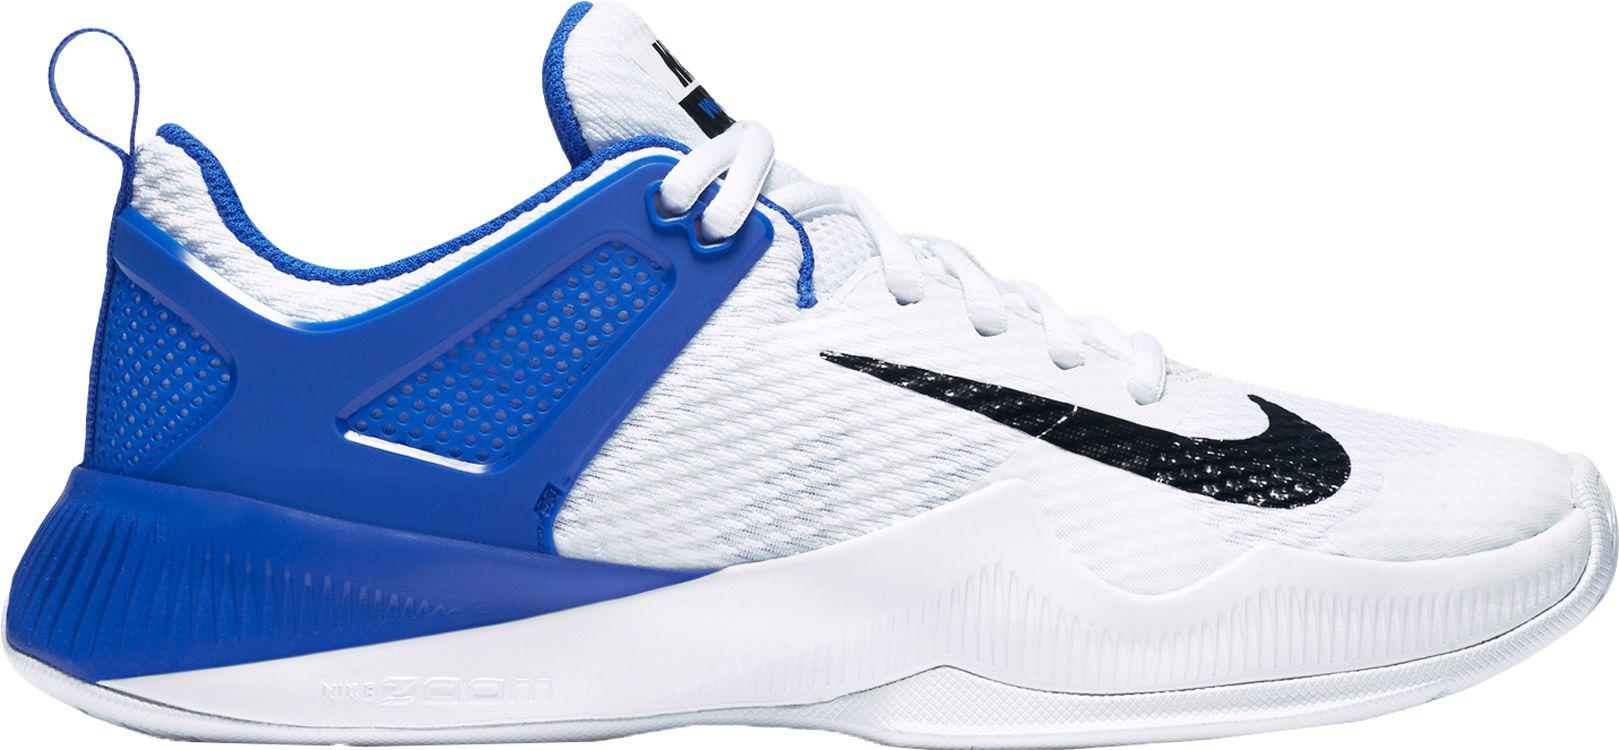 12683a77b748c Lyst - Nike Air Zoom Hyperace Volleyball Shoes in Blue